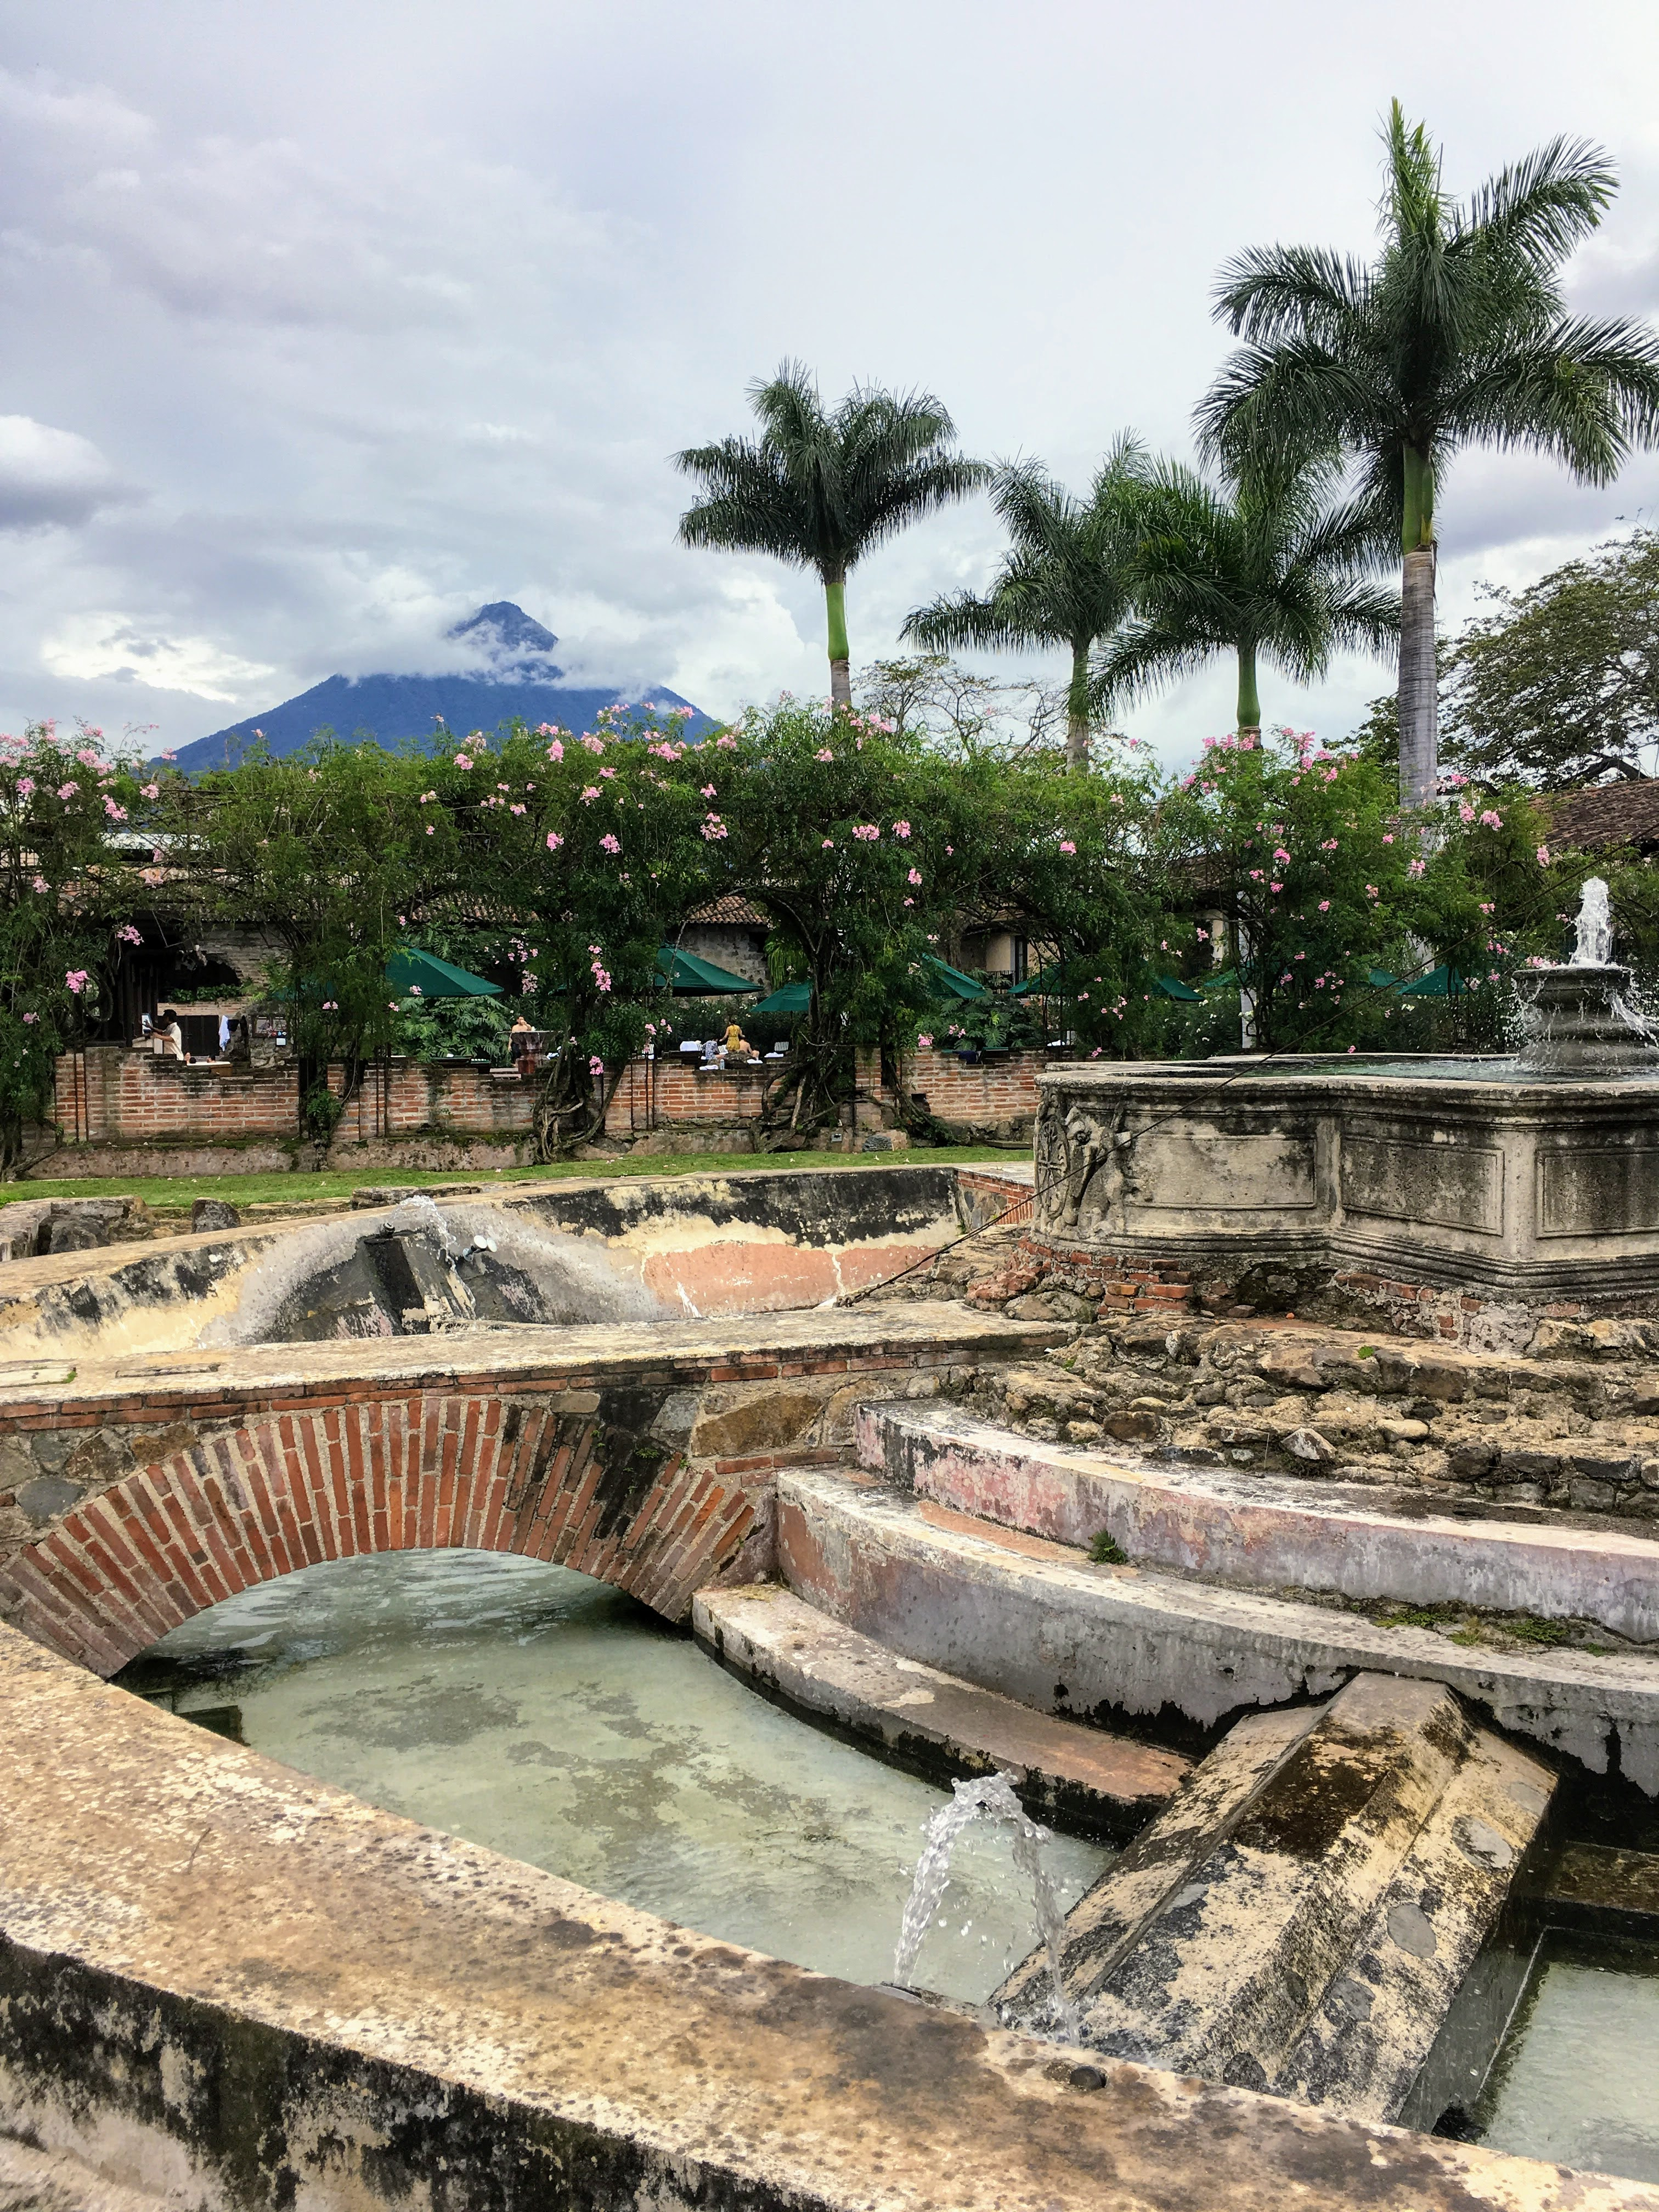 One of the highlights of Antigua is the the ruin of Casa Santo Domingo, a part of what's left of the monastery has been converted into a fancy hotel, but anybody is free to enter and tour the ground. It's quite fascinating.